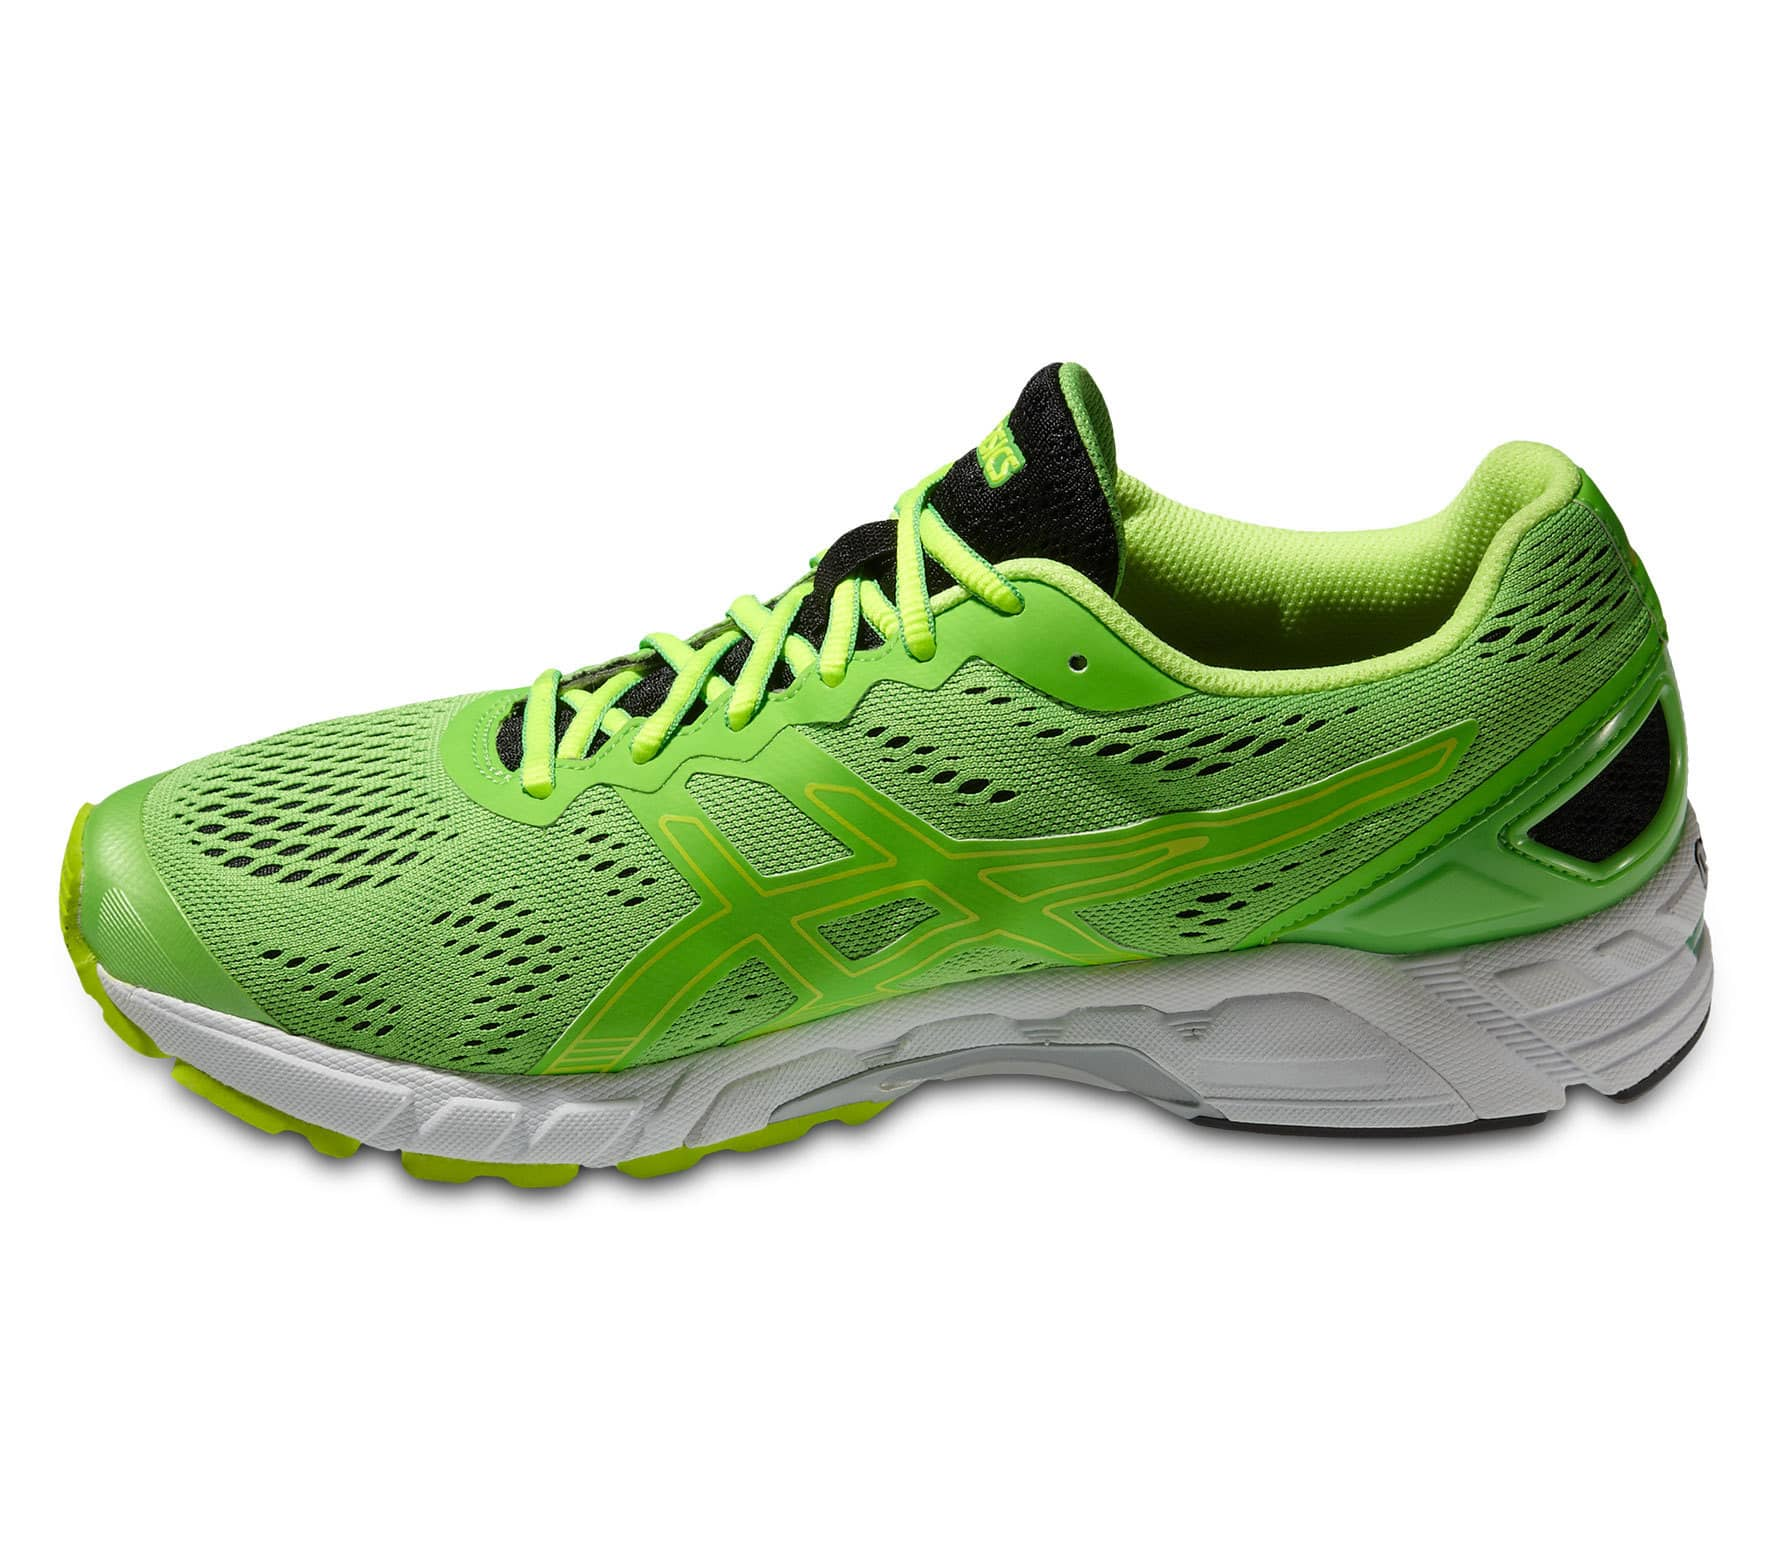 official photos 2f134 b8090 ASICS - Gel-DS Trainer 19 Neutral men running shoes (green/white)